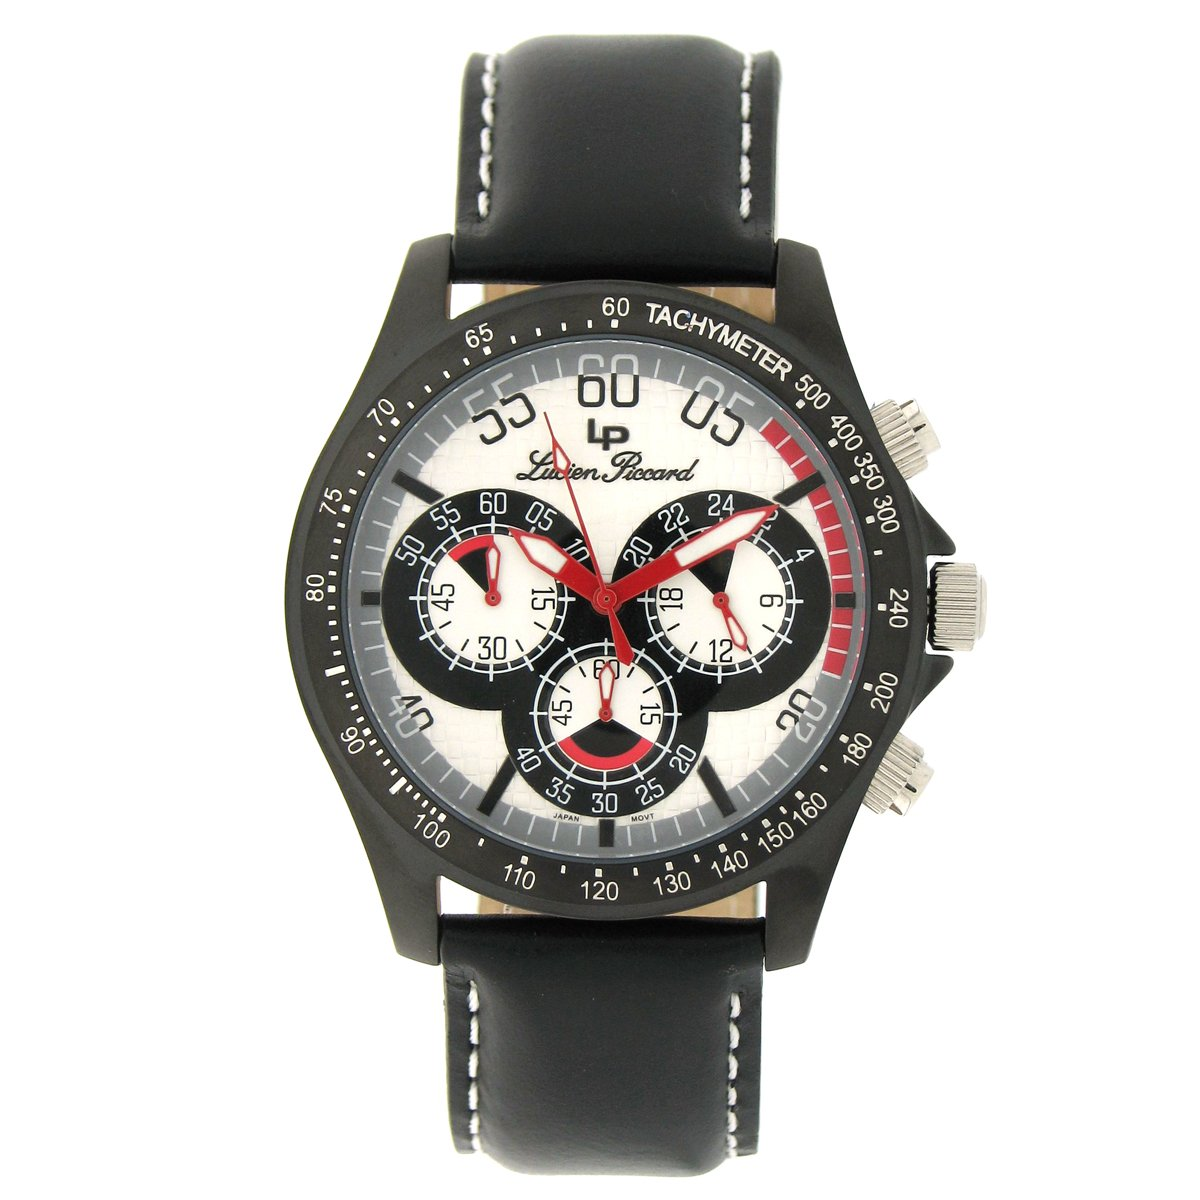 Amazon.com: Lucien Piccard Men's 26959SL Black Ion-Plated Chronograph Watch:  Watches